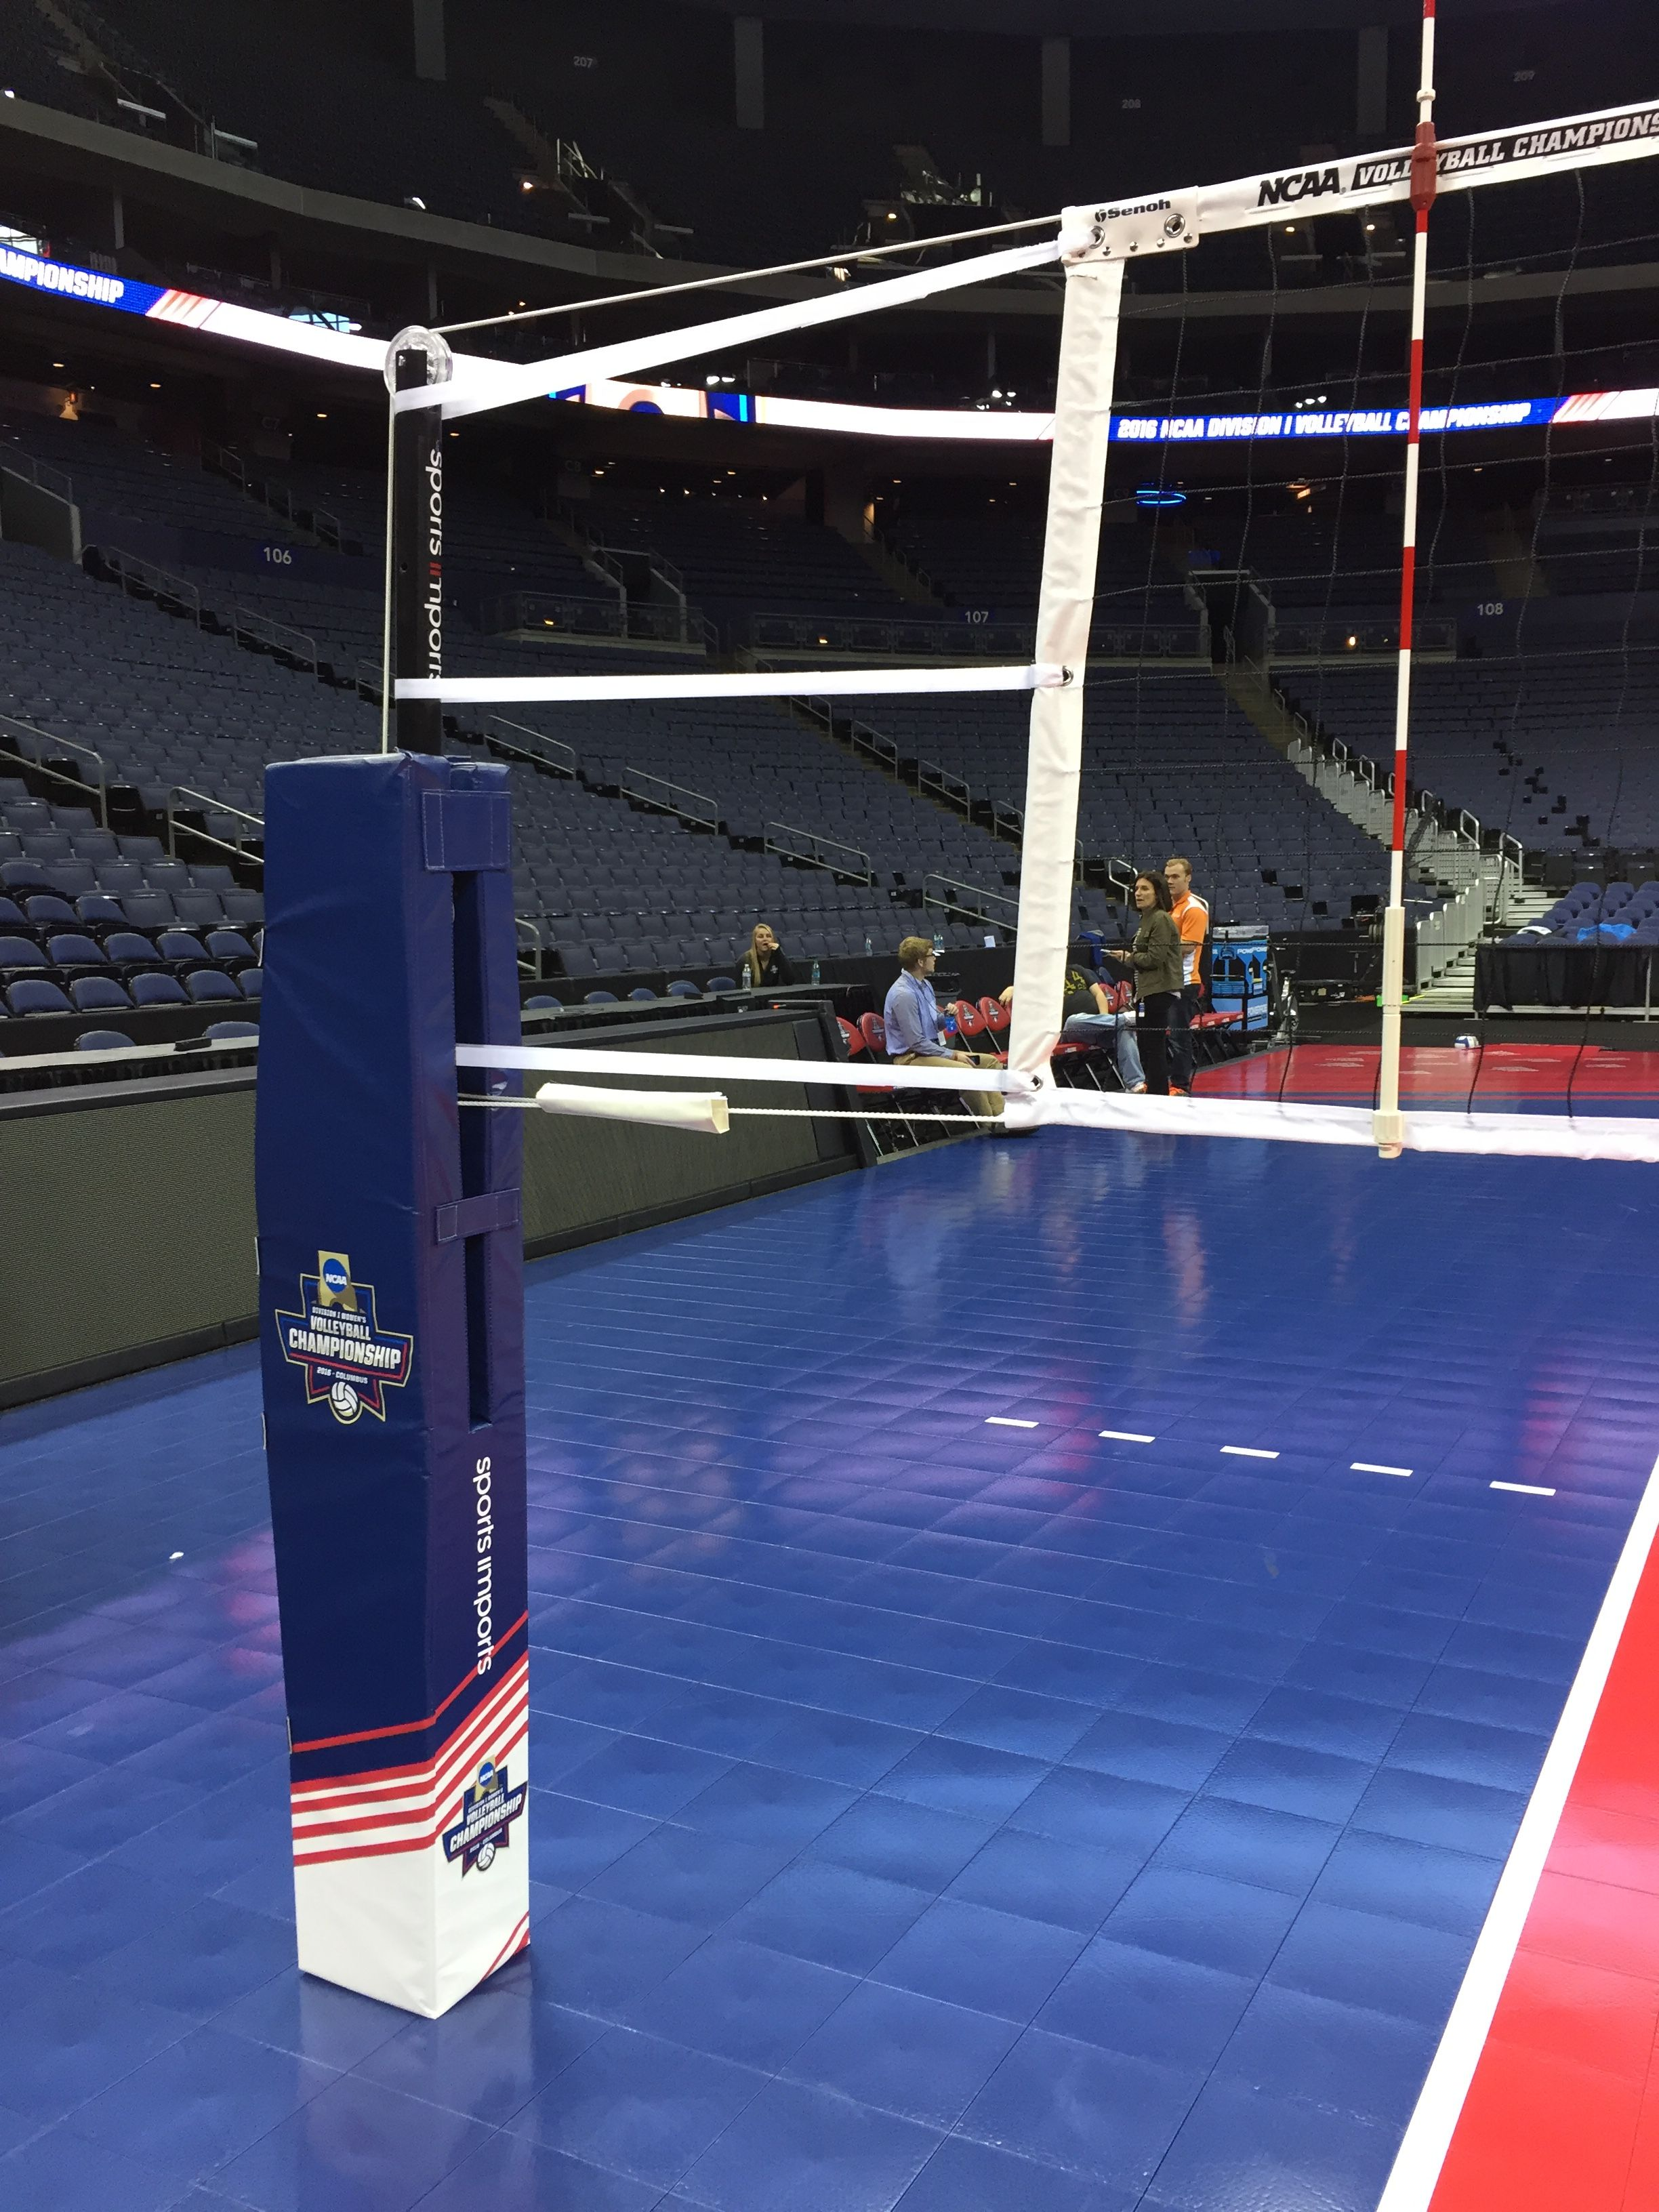 2016 Ncaa Volleyball Championship Sicarbonnation Volleyball Net Volleyball Outdoor Volleyball Net